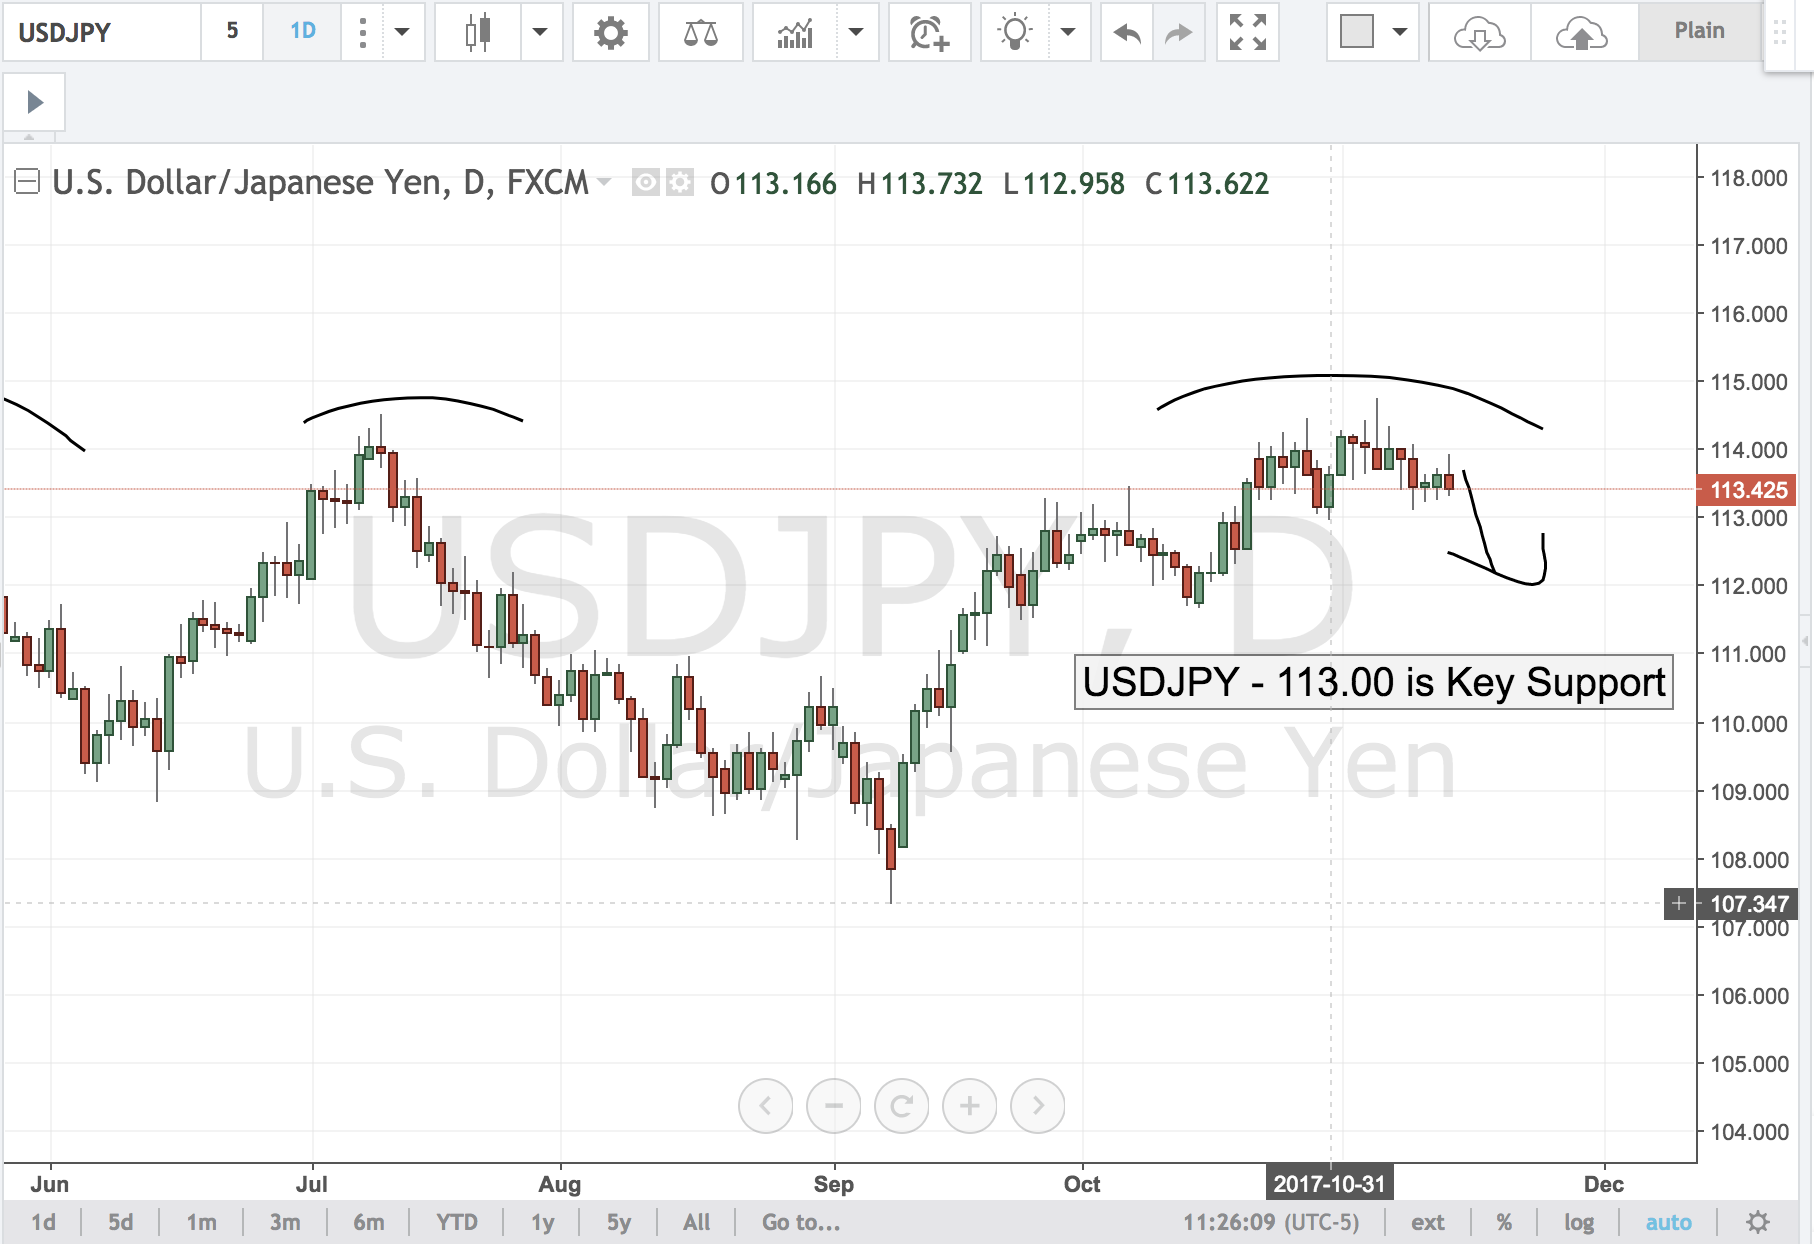 USDJPY – 113.00 is Key Support